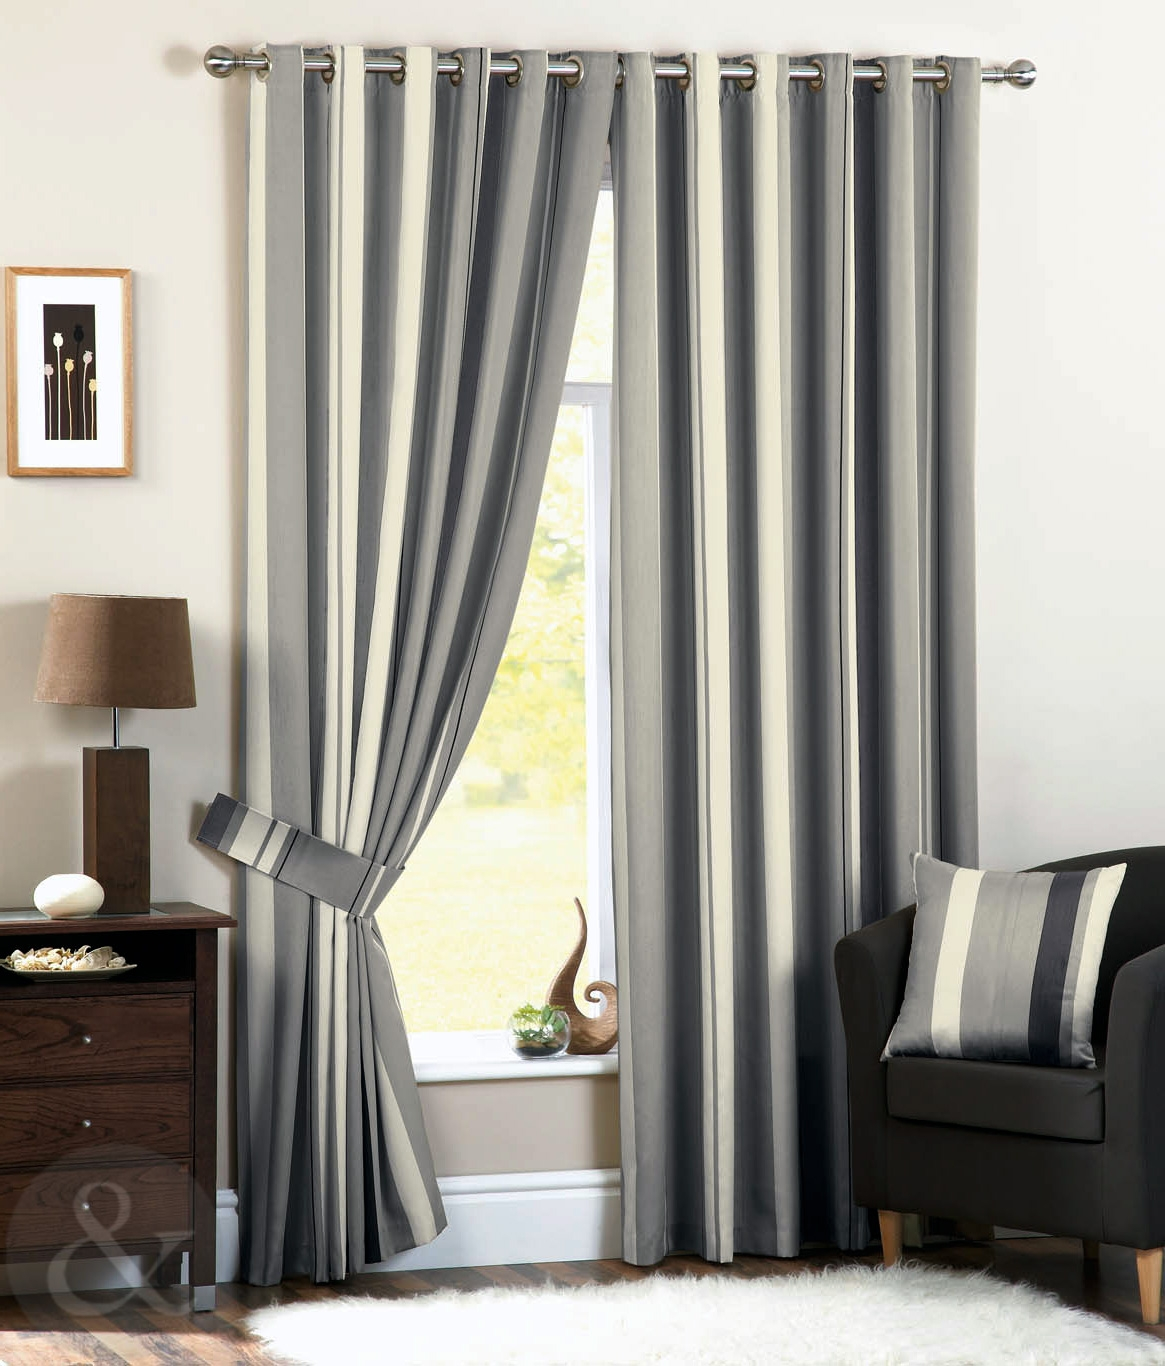 Luxury Striped Faux Silk Curtains Ready Made Eyelet Ring Top Fully Regarding Silk Ready Made Curtains (Image 4 of 15)